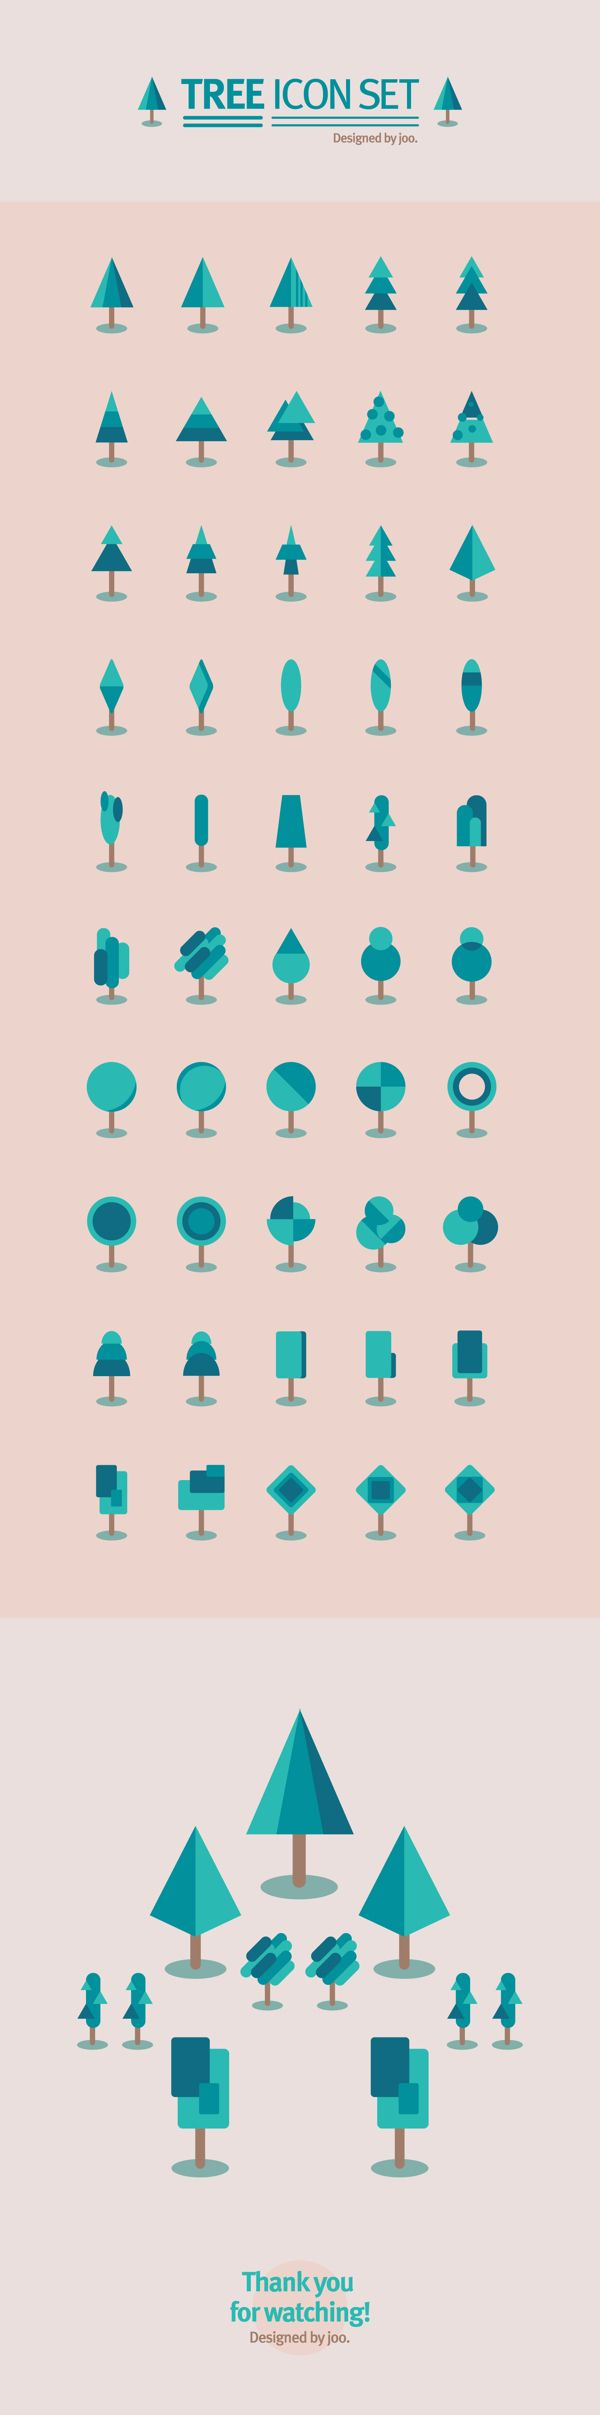 50 tree icon set by joo eunjeong